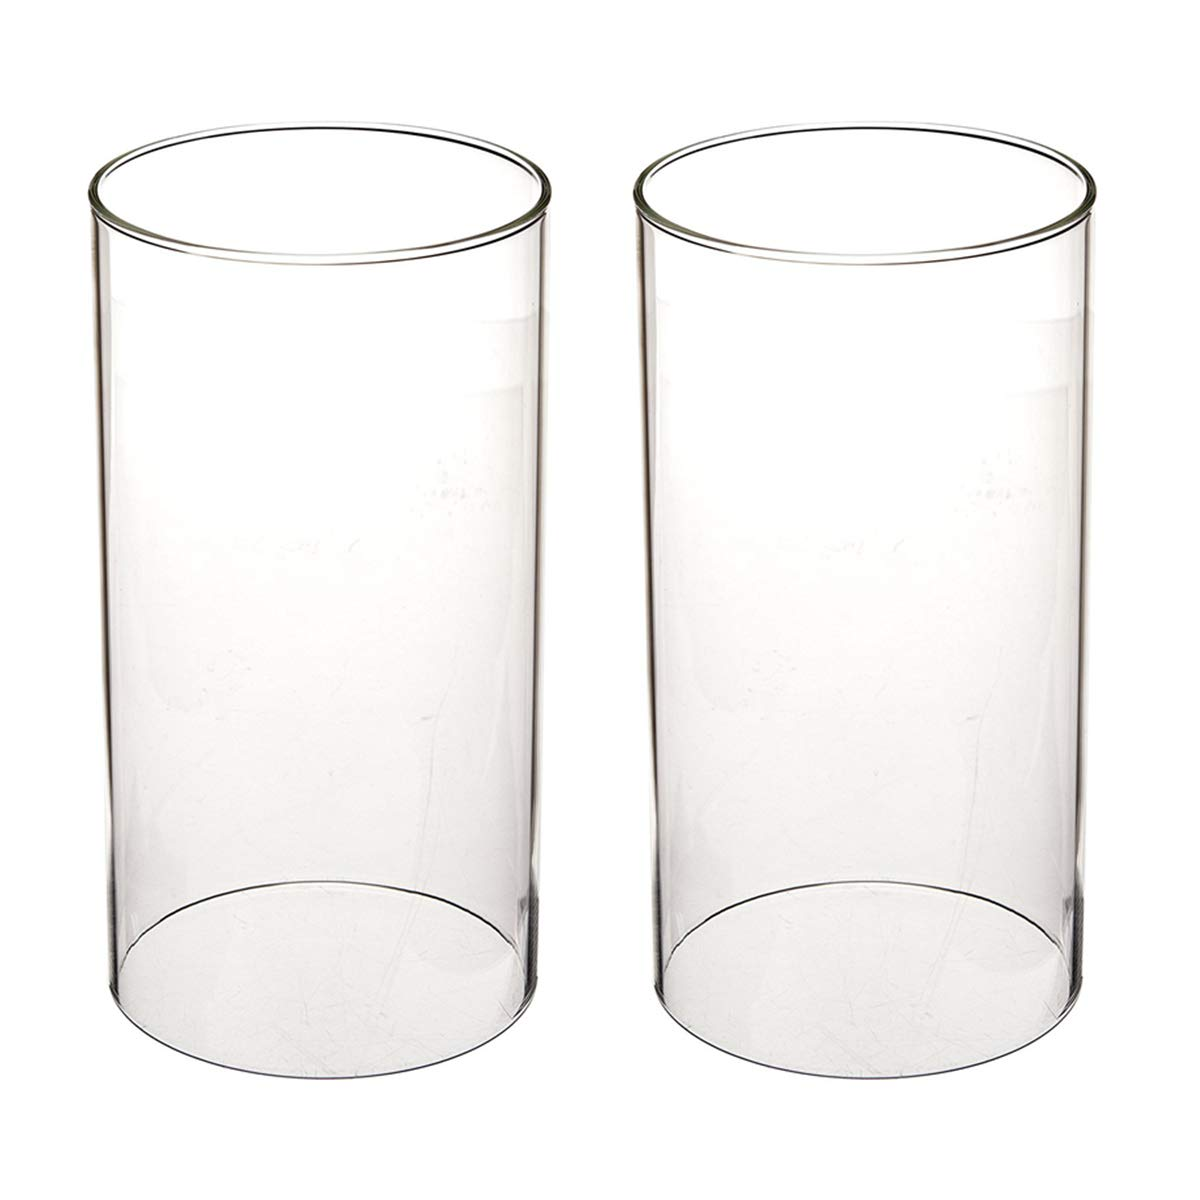 SGLED Clear Candle Holder, Glass Chimney for Candle Open Ended, Internal Diameter 3.55